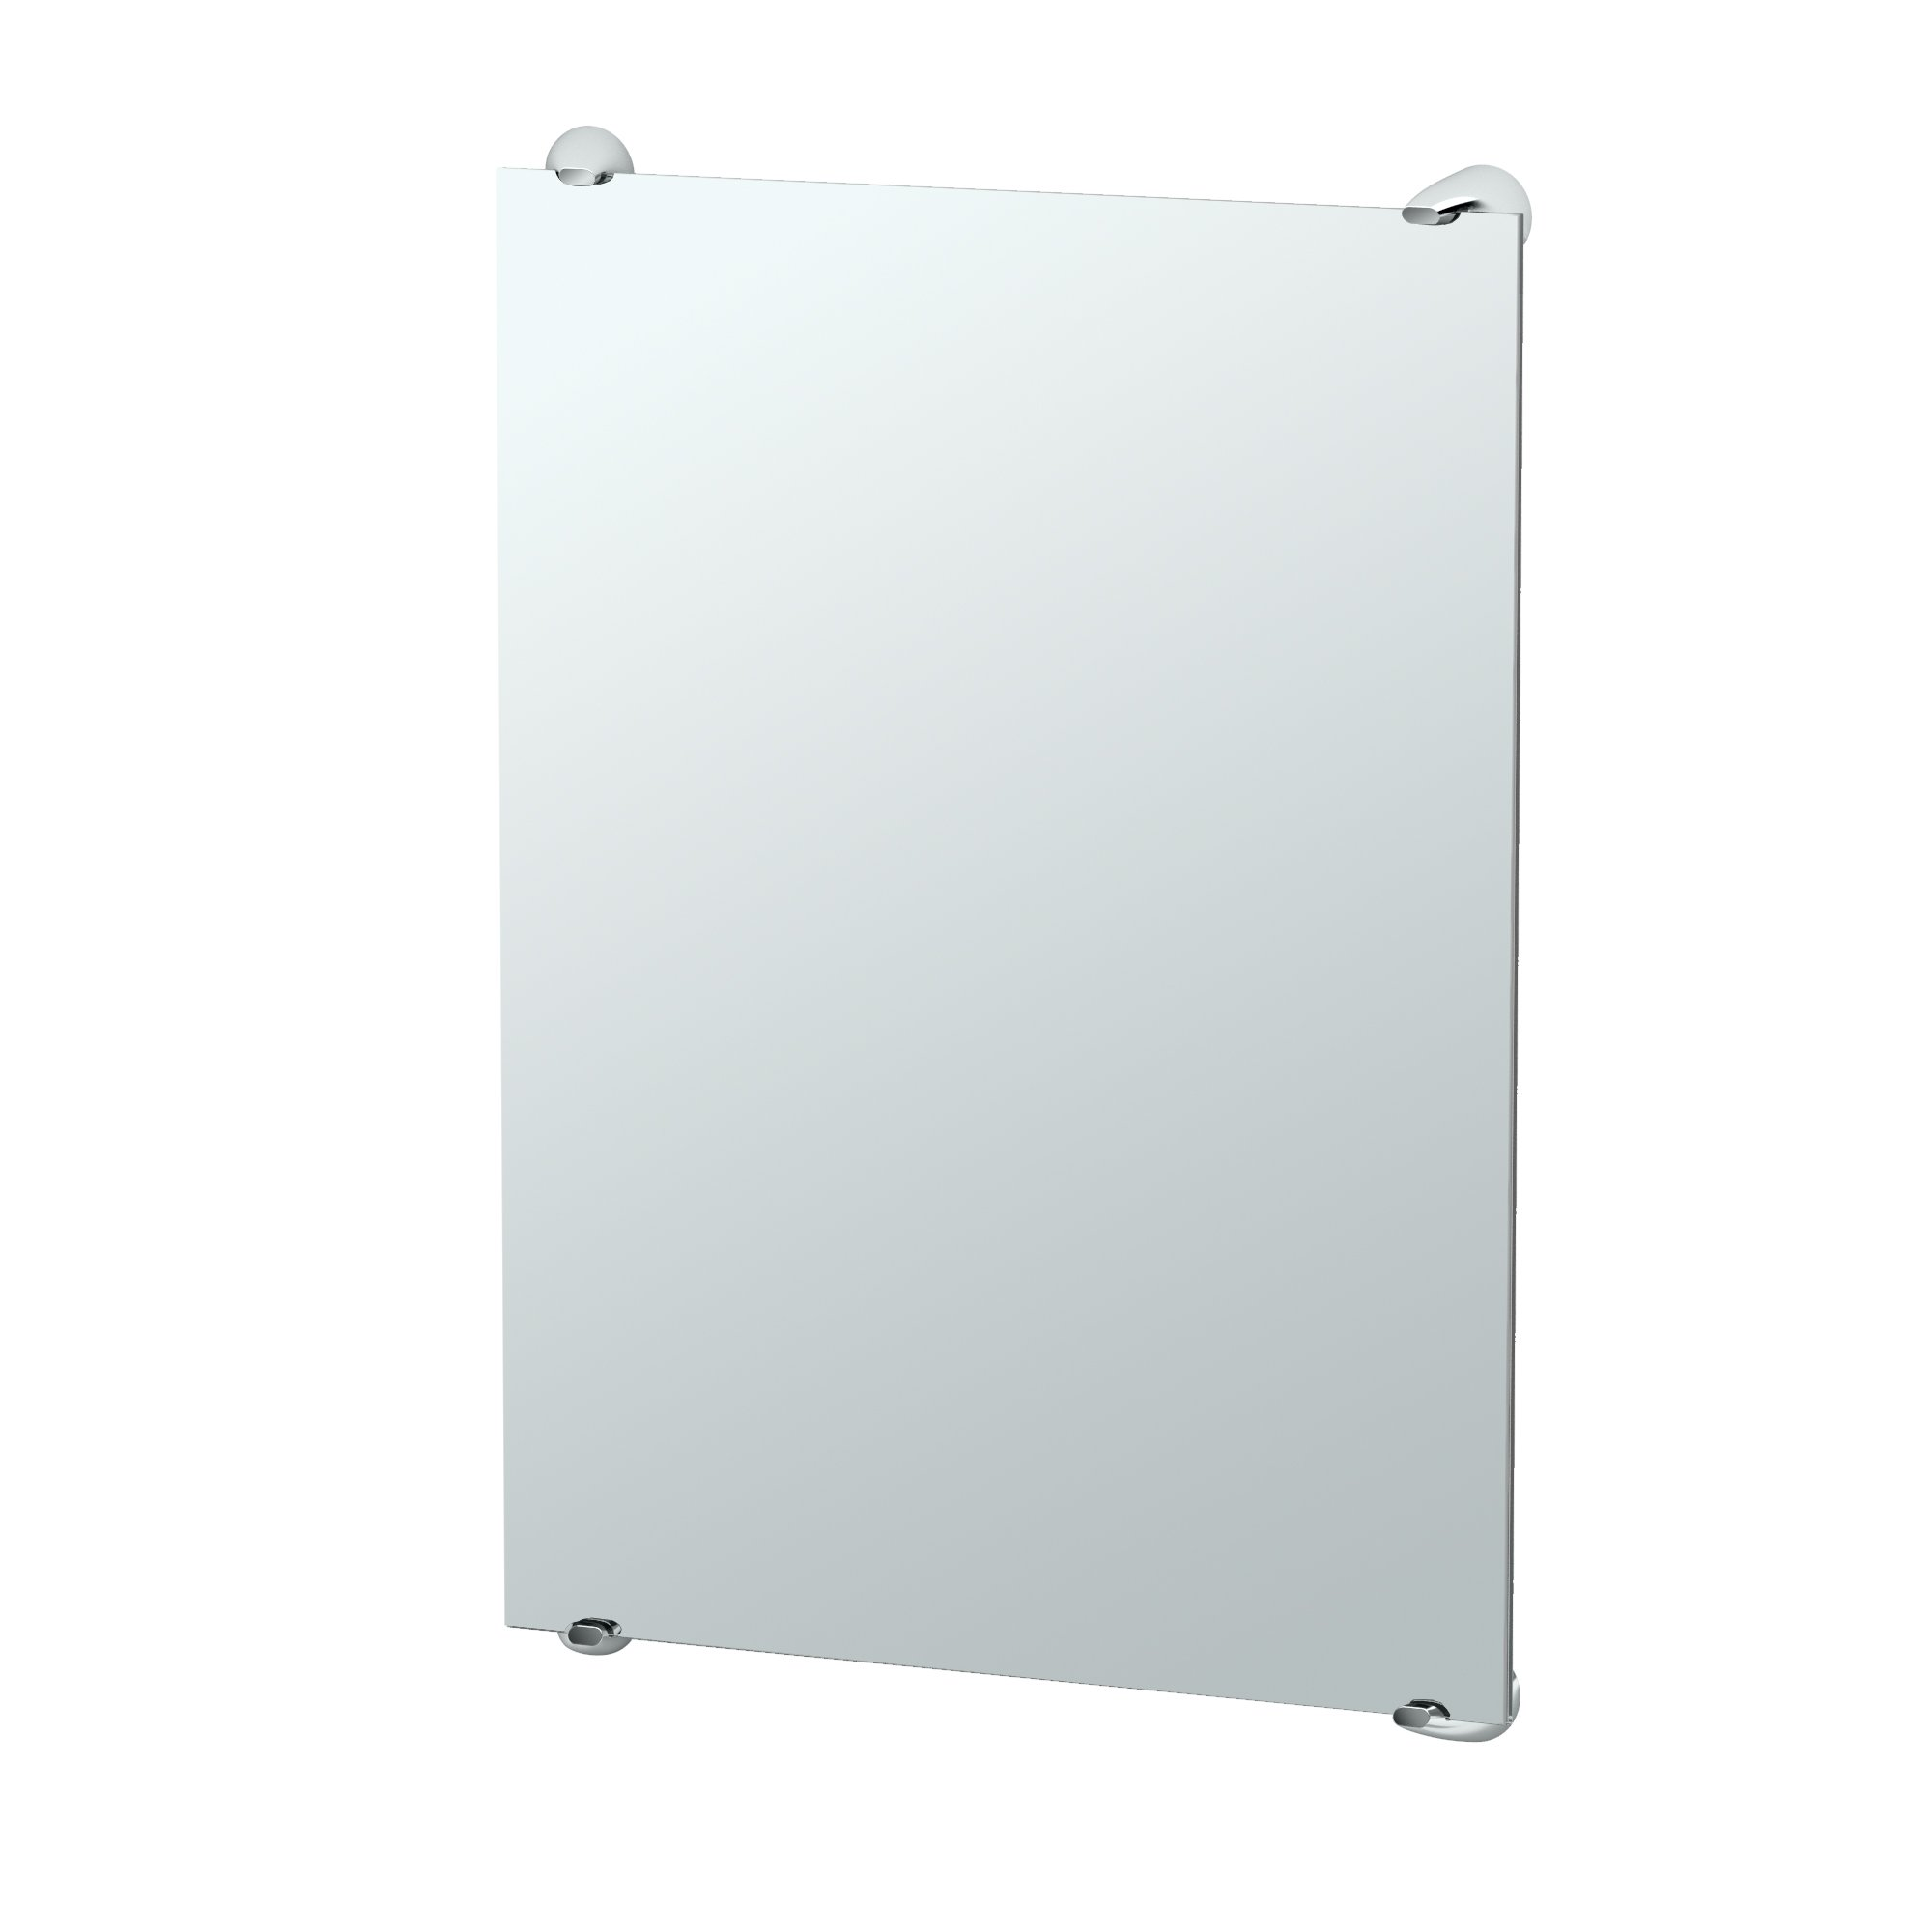 Gatco 1592 Brie Minimalist Bathroom Fixed Mounted Mirror, 30'', Chrome